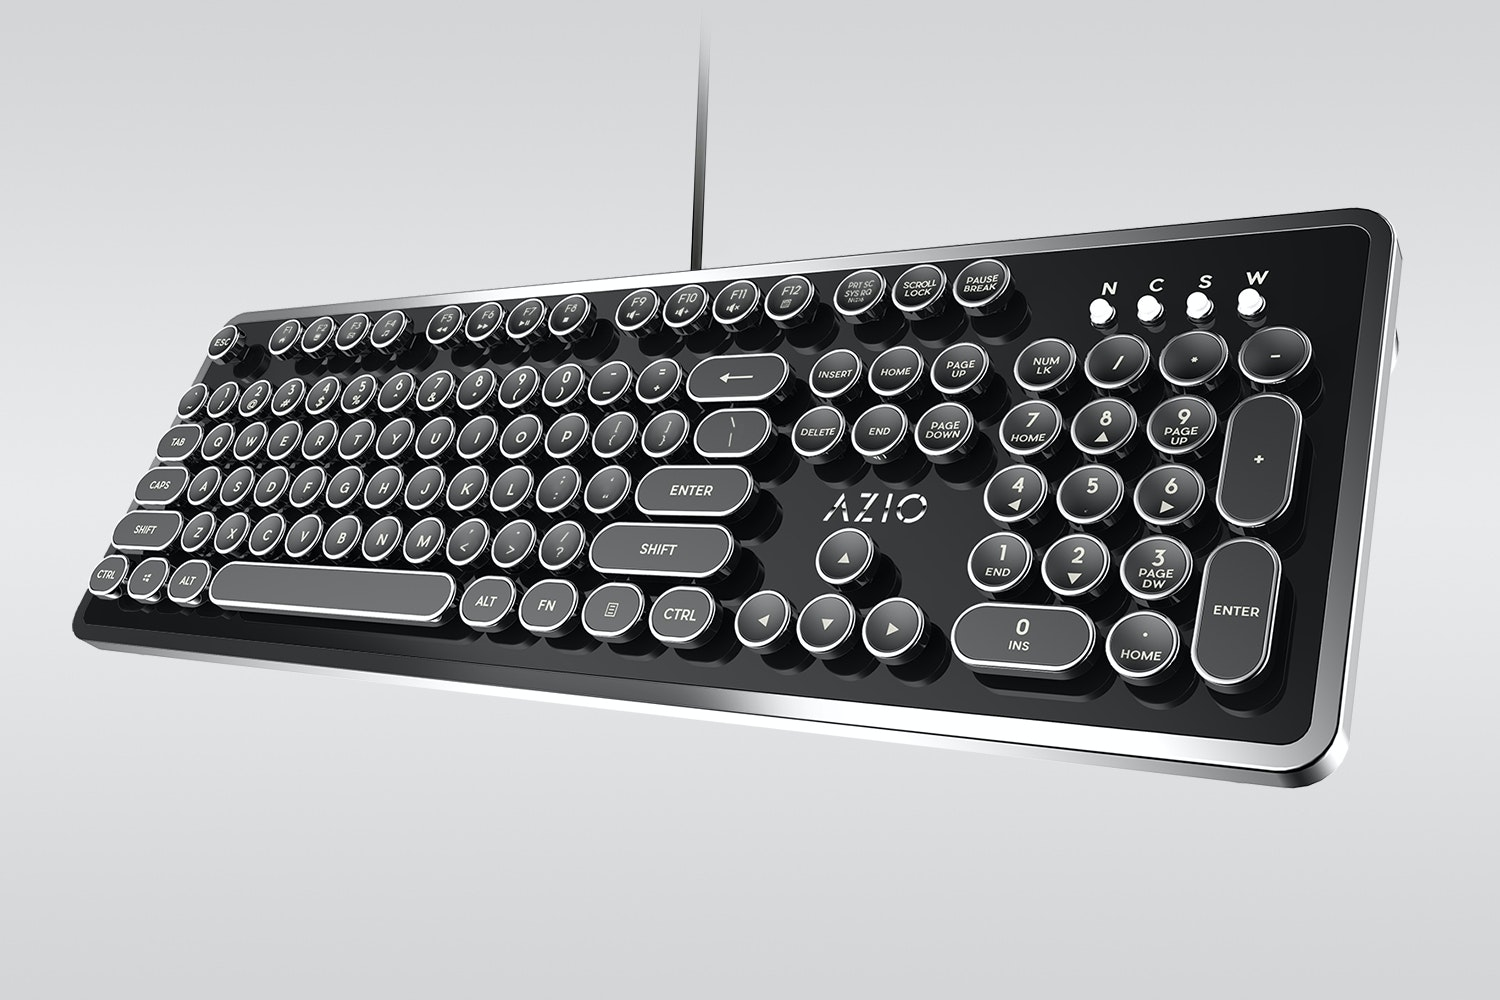 Azio MK-Retro Typewriter-Style Mechanical Keyboard